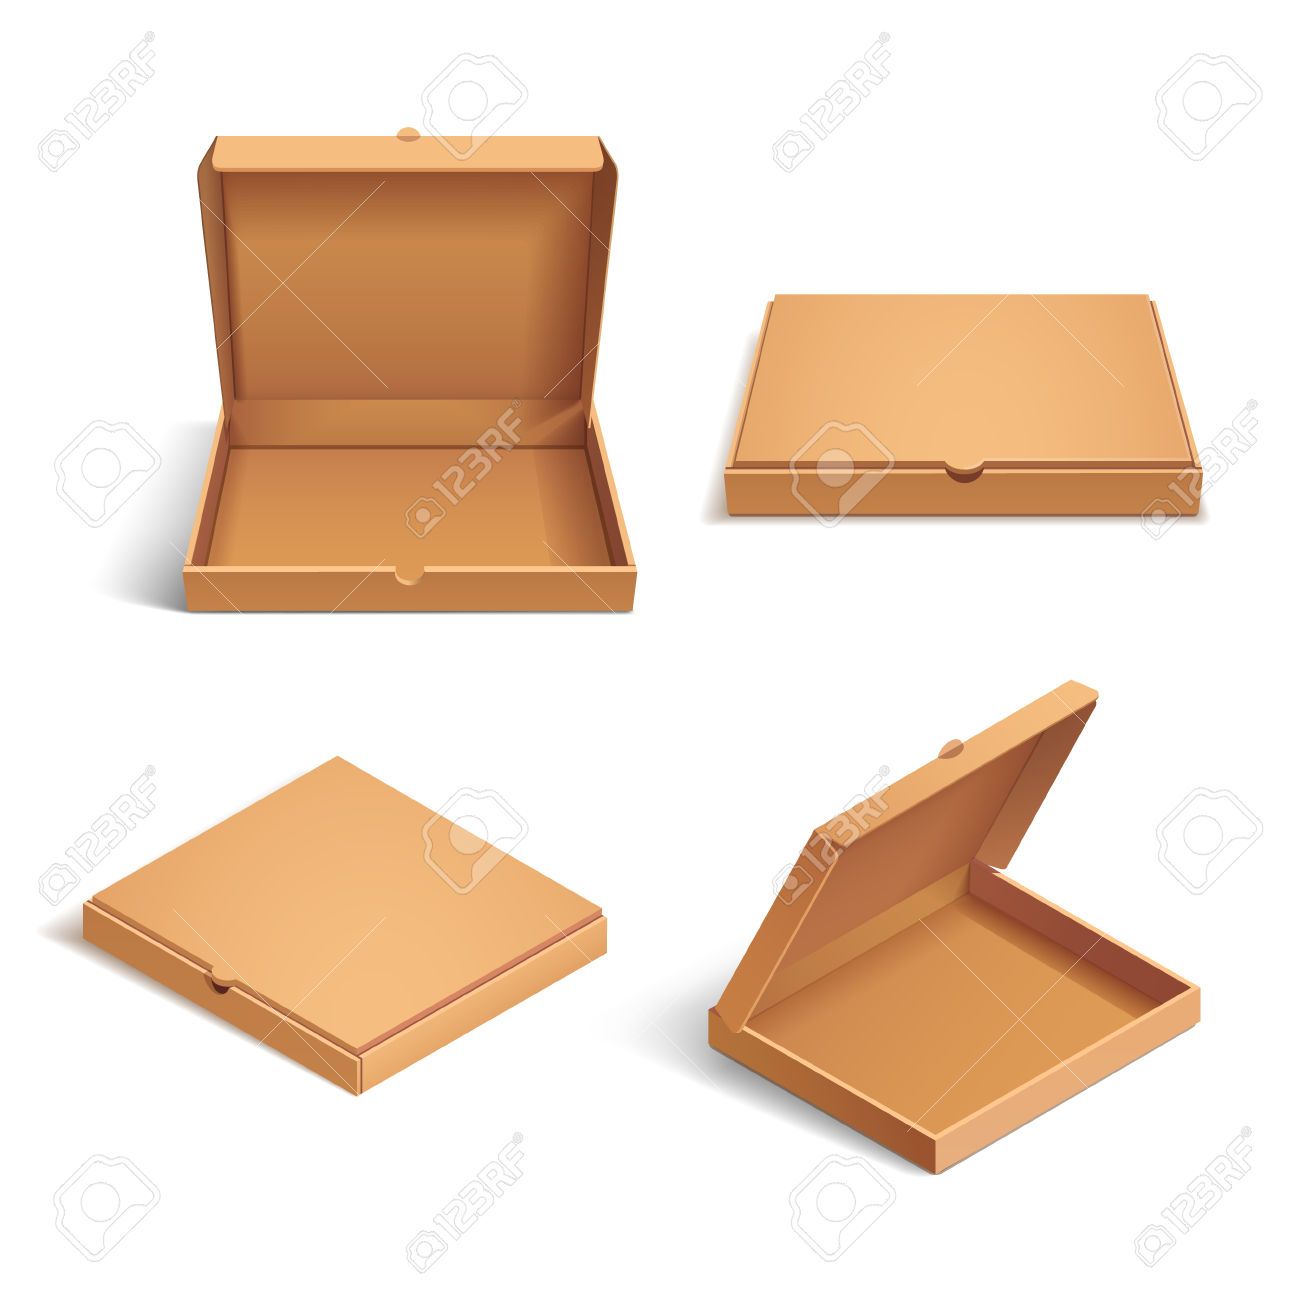 748 View Packaging Business Stock Vector Illustration And Royalty.